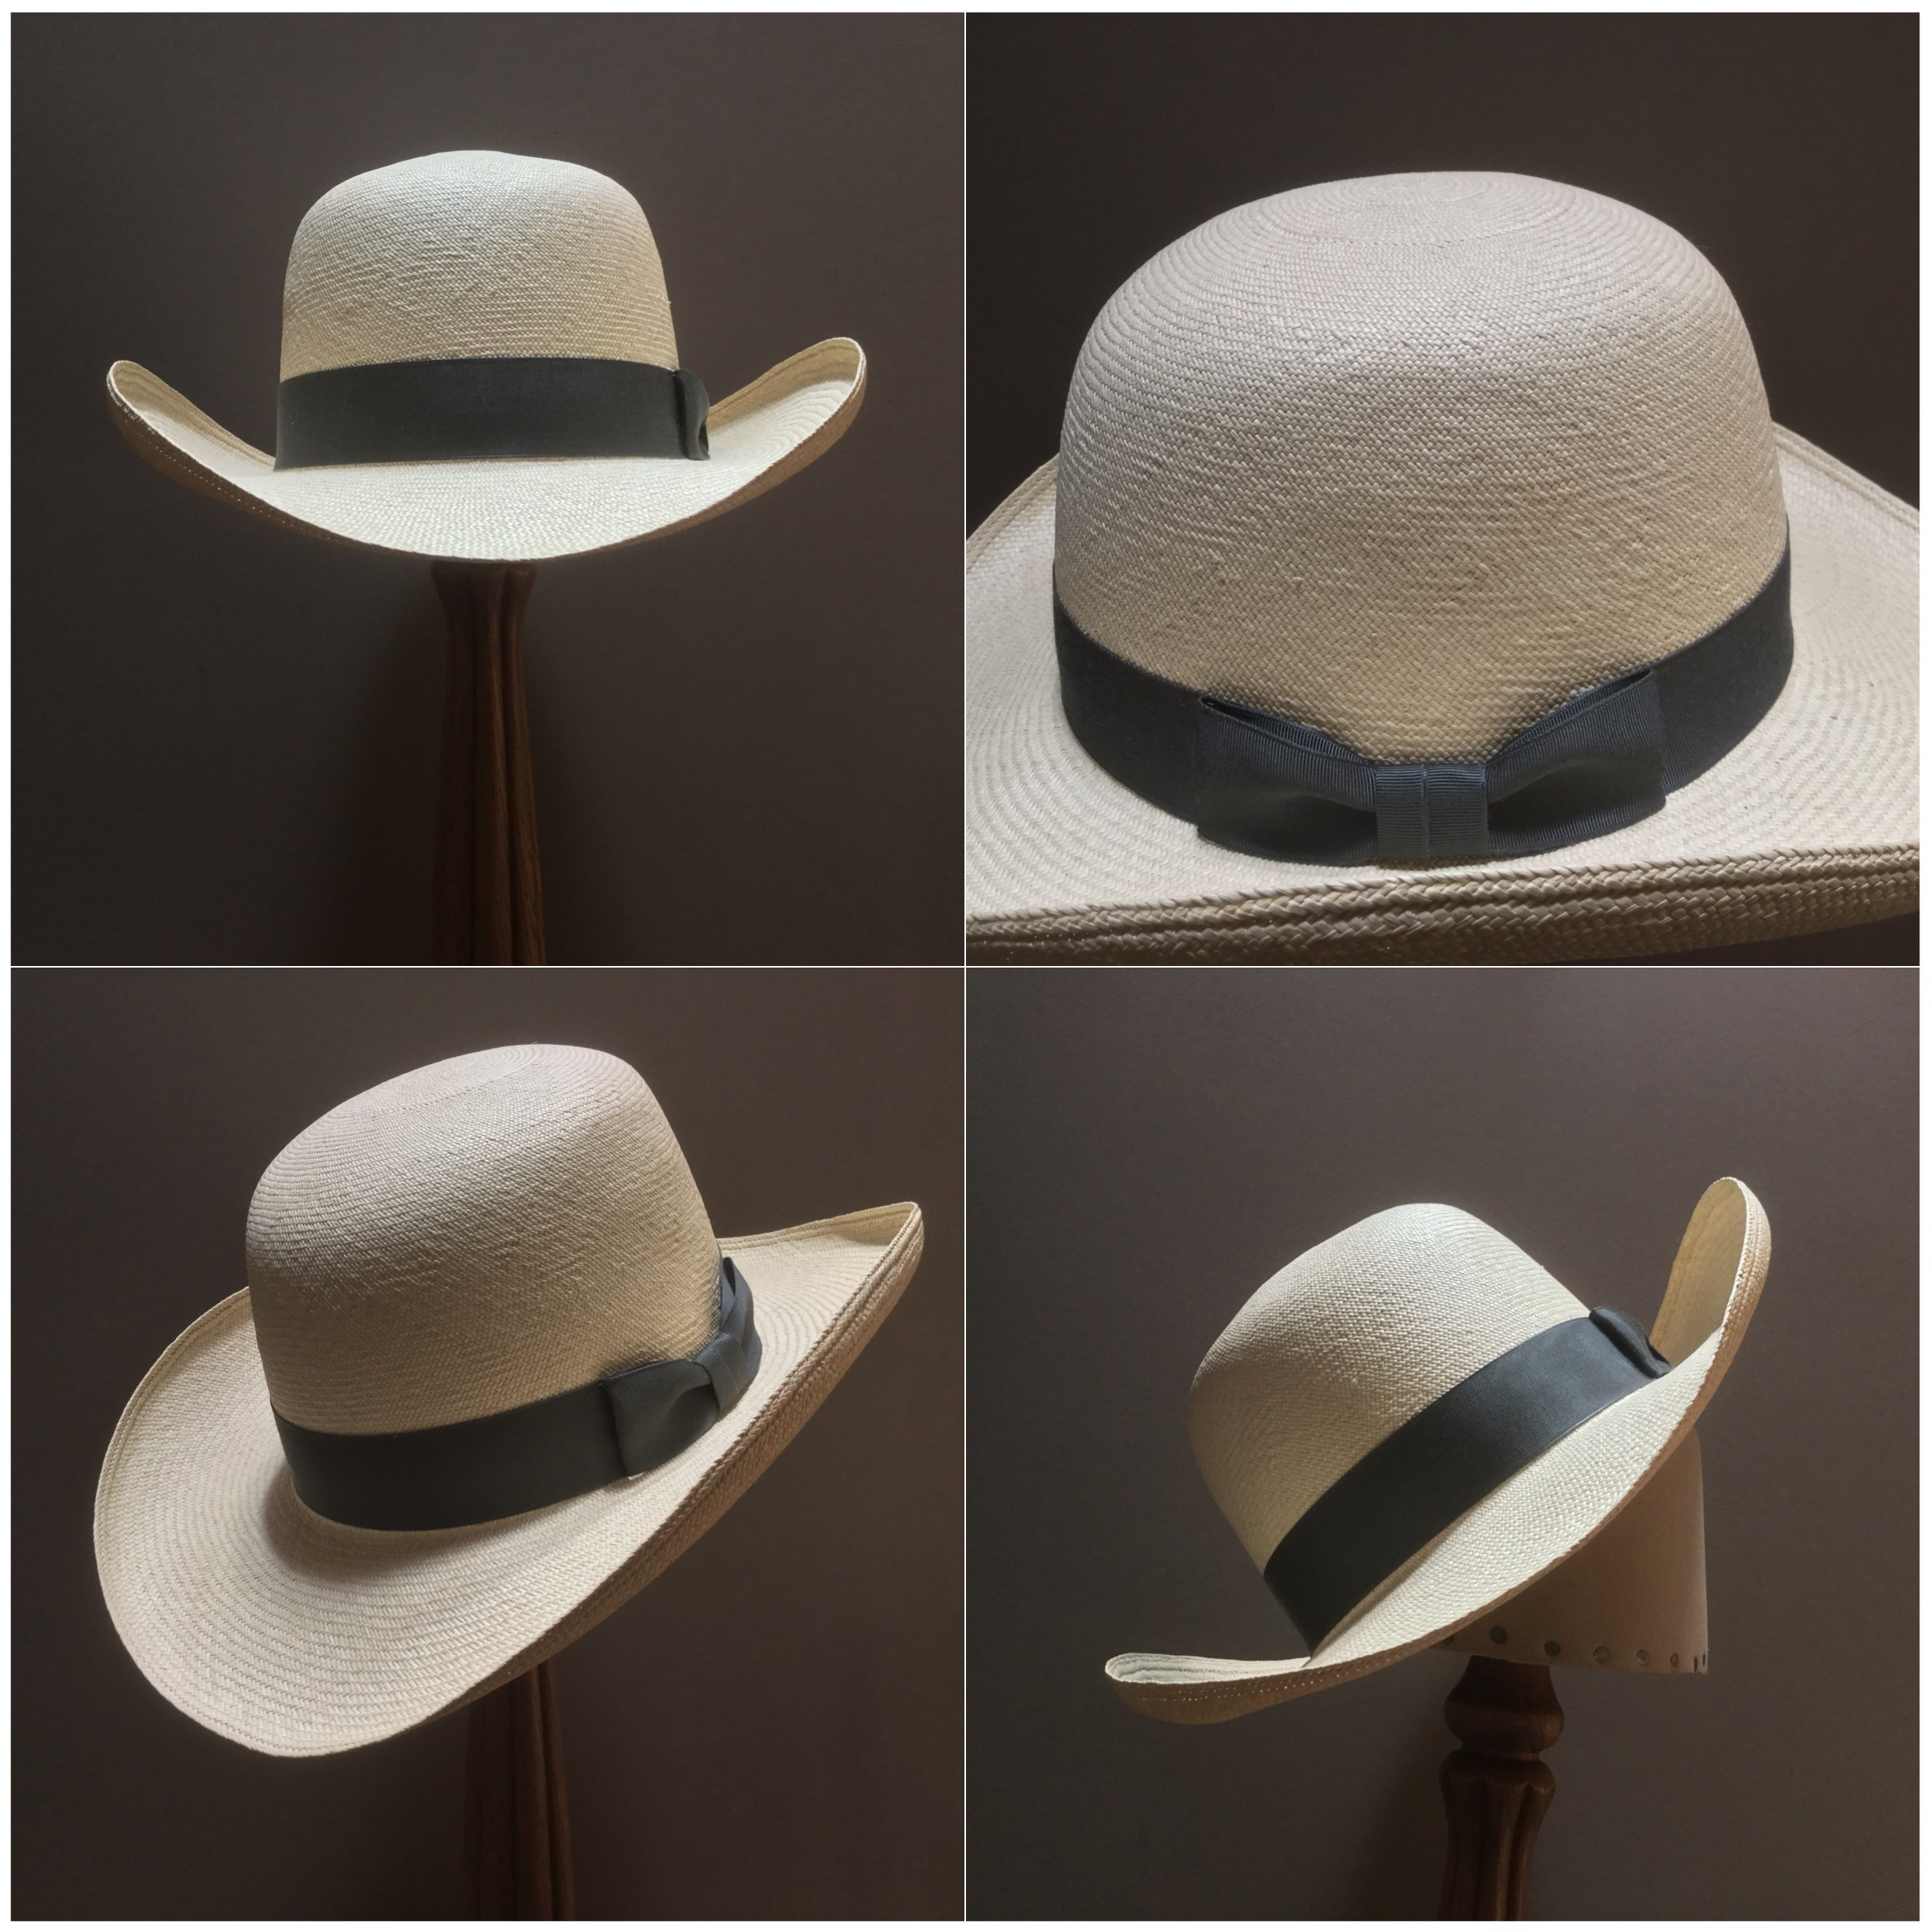 Weave: Cuenca Grade: 14/16 Brim Set: 90 Degree Curl Trim: 1 1/4 Inch Grosgrain Ribbon with Pleated Bow